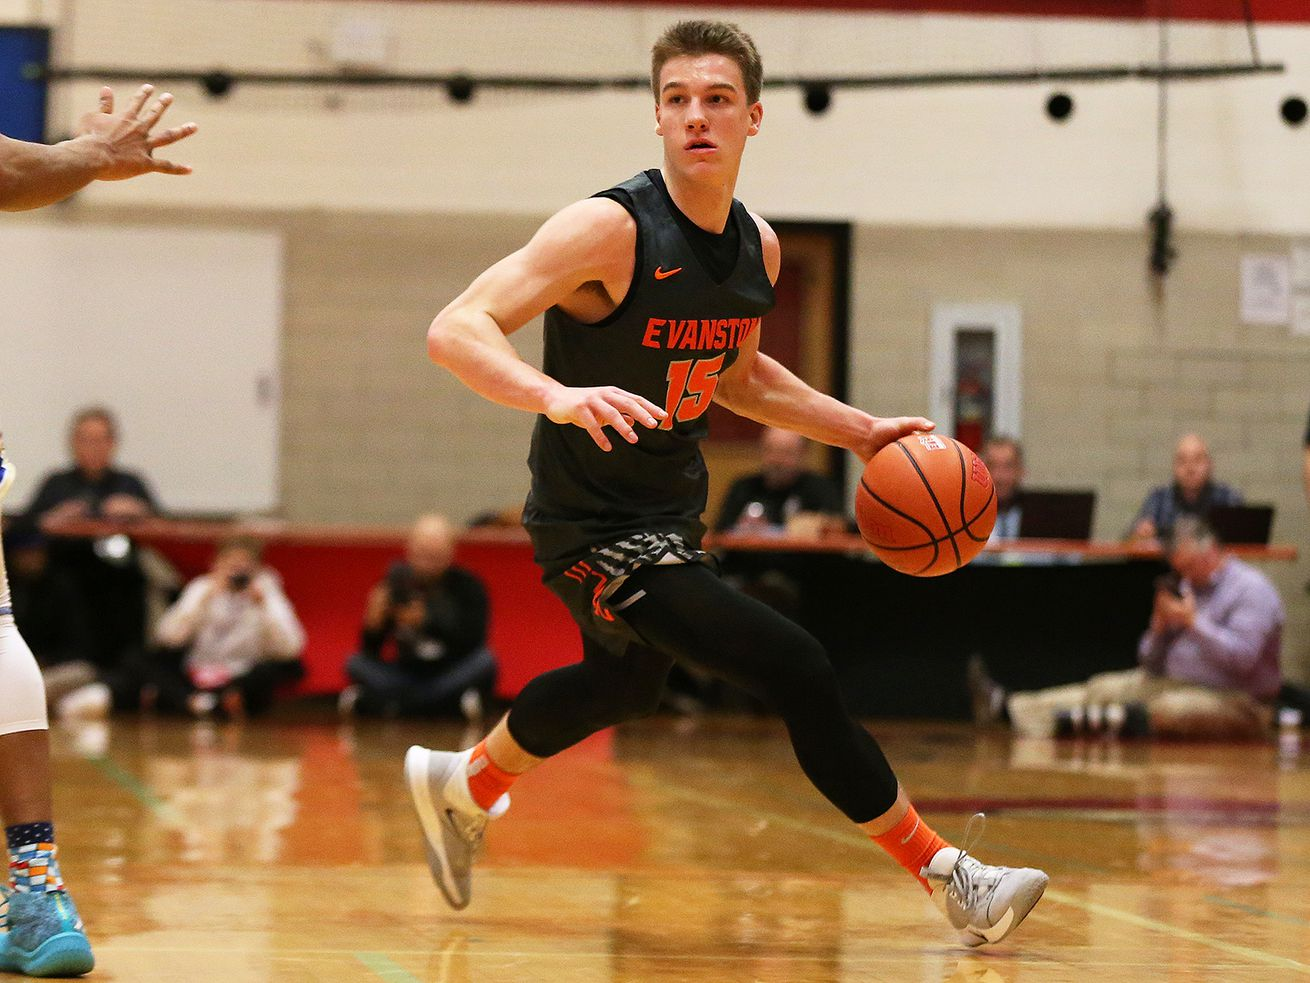 Evanston's Blake Peters picks Princeton